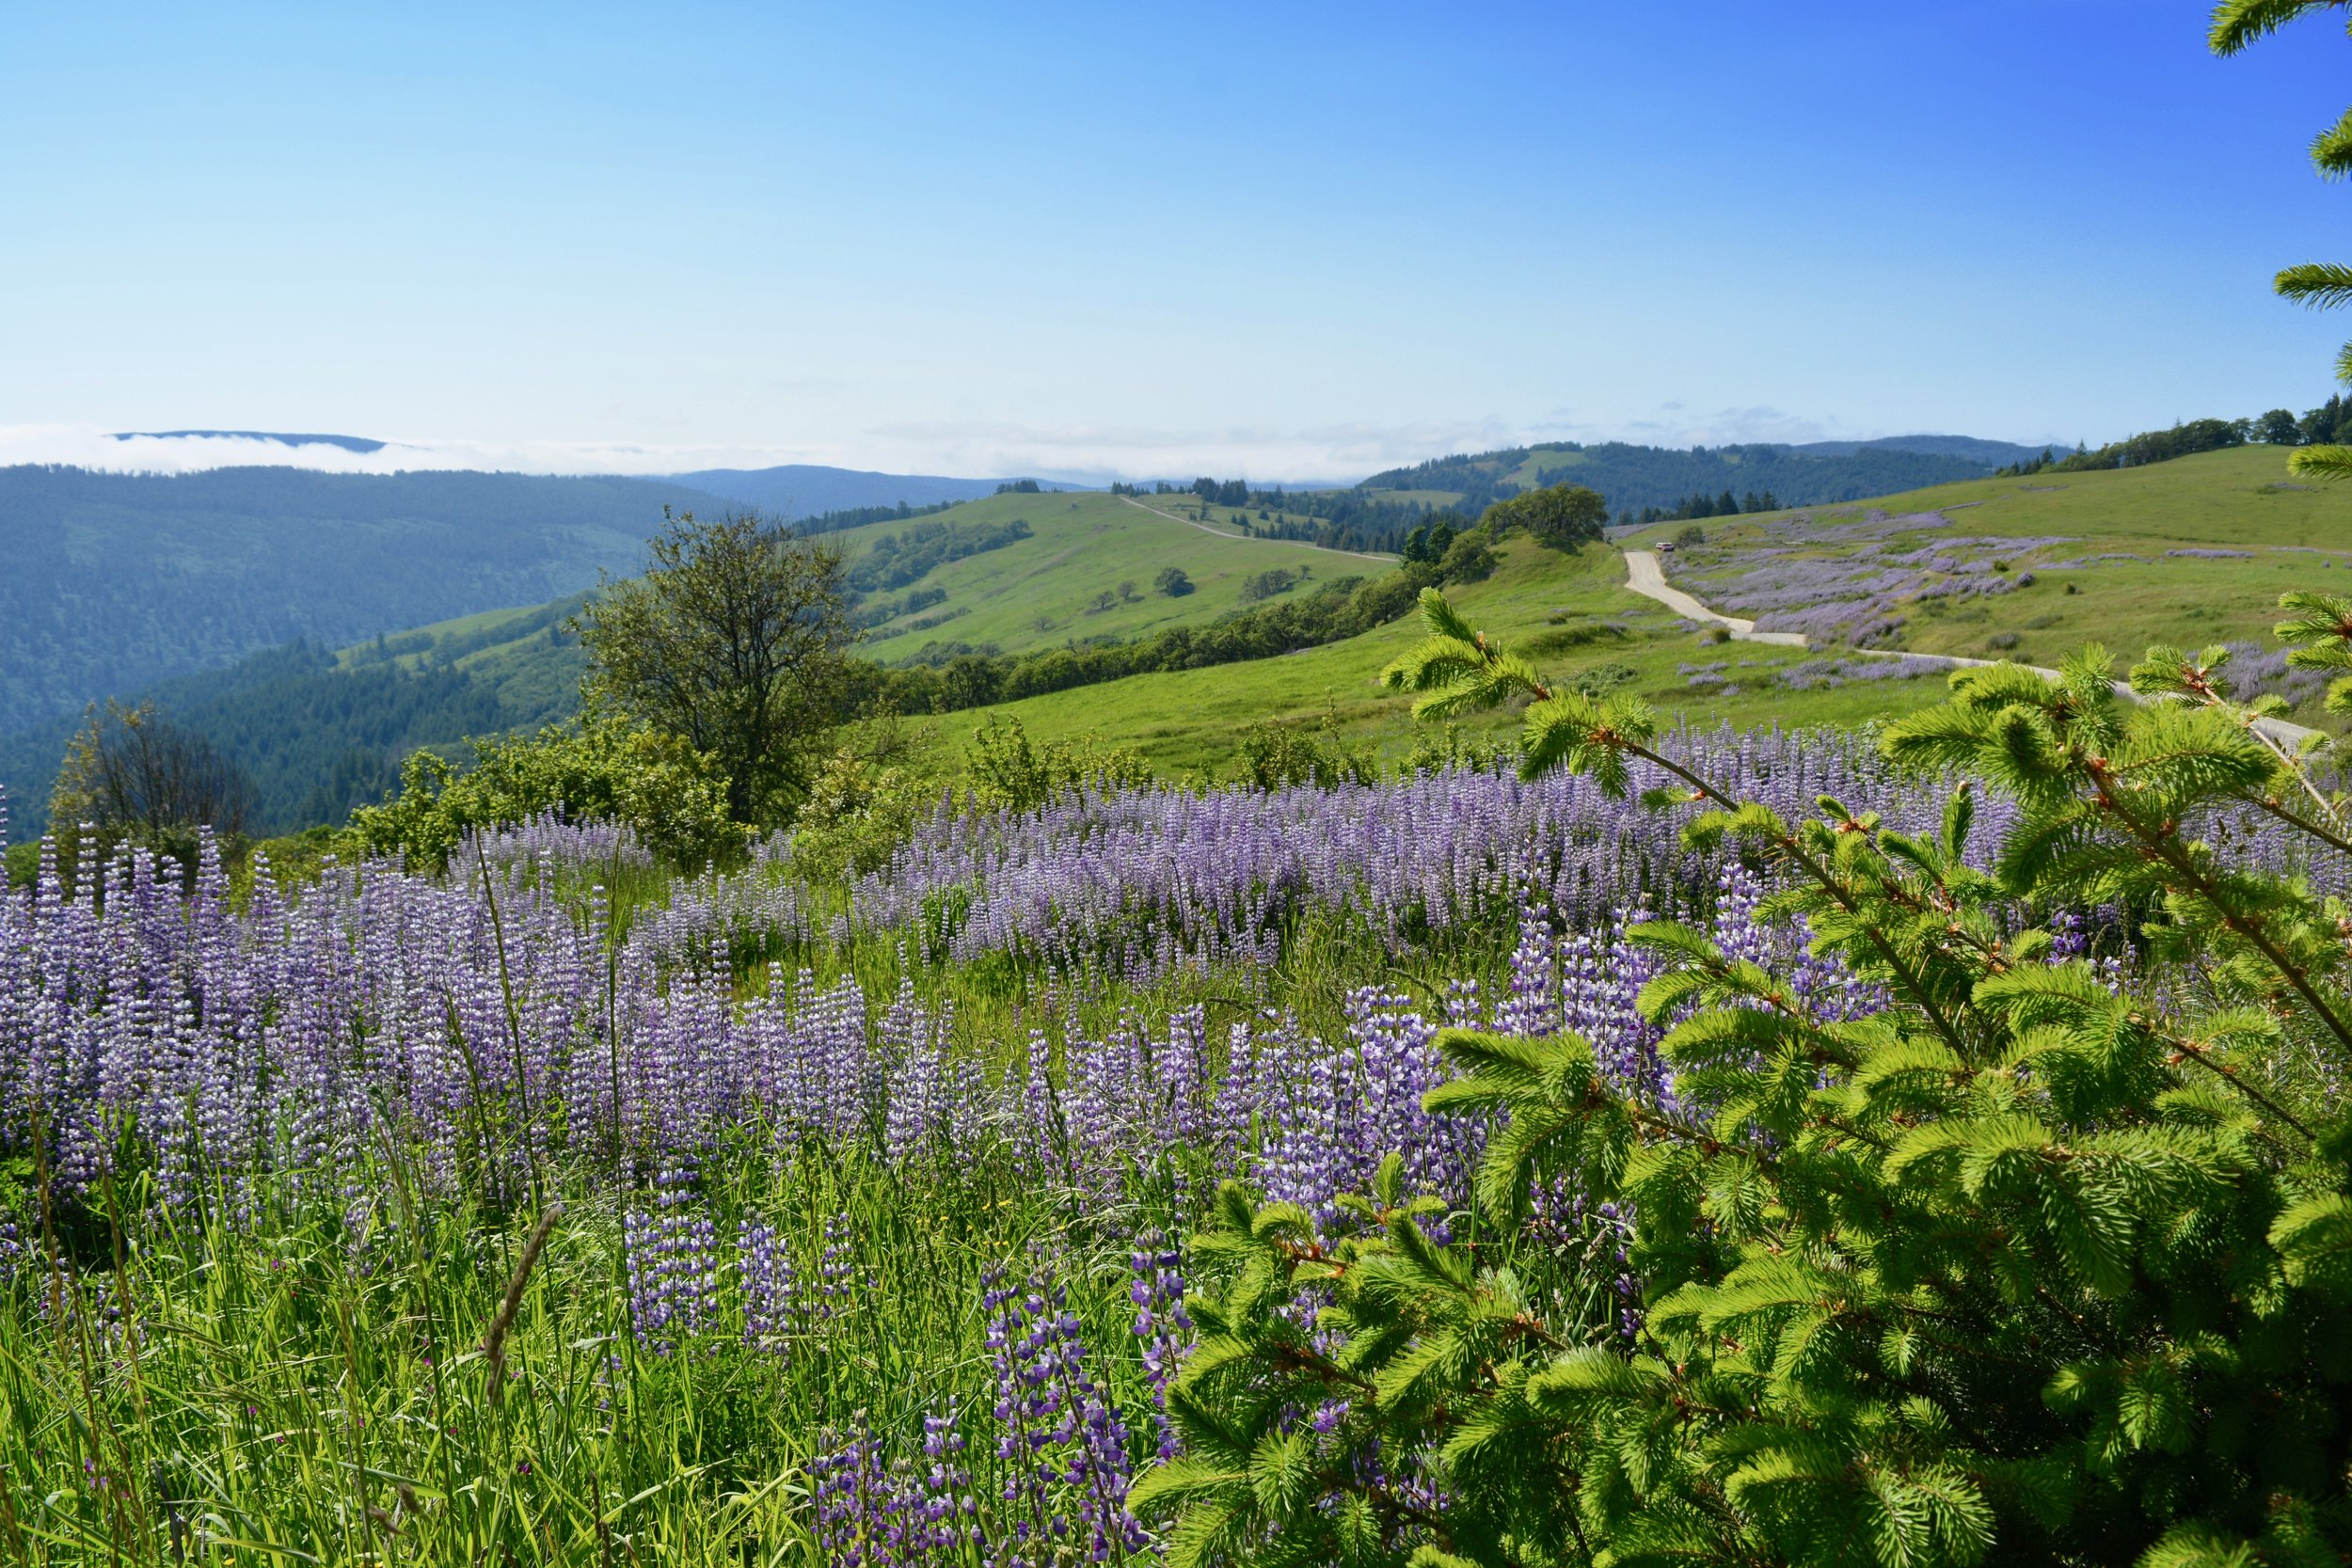 Lupine covered hills along the backroads of Redwood National Park